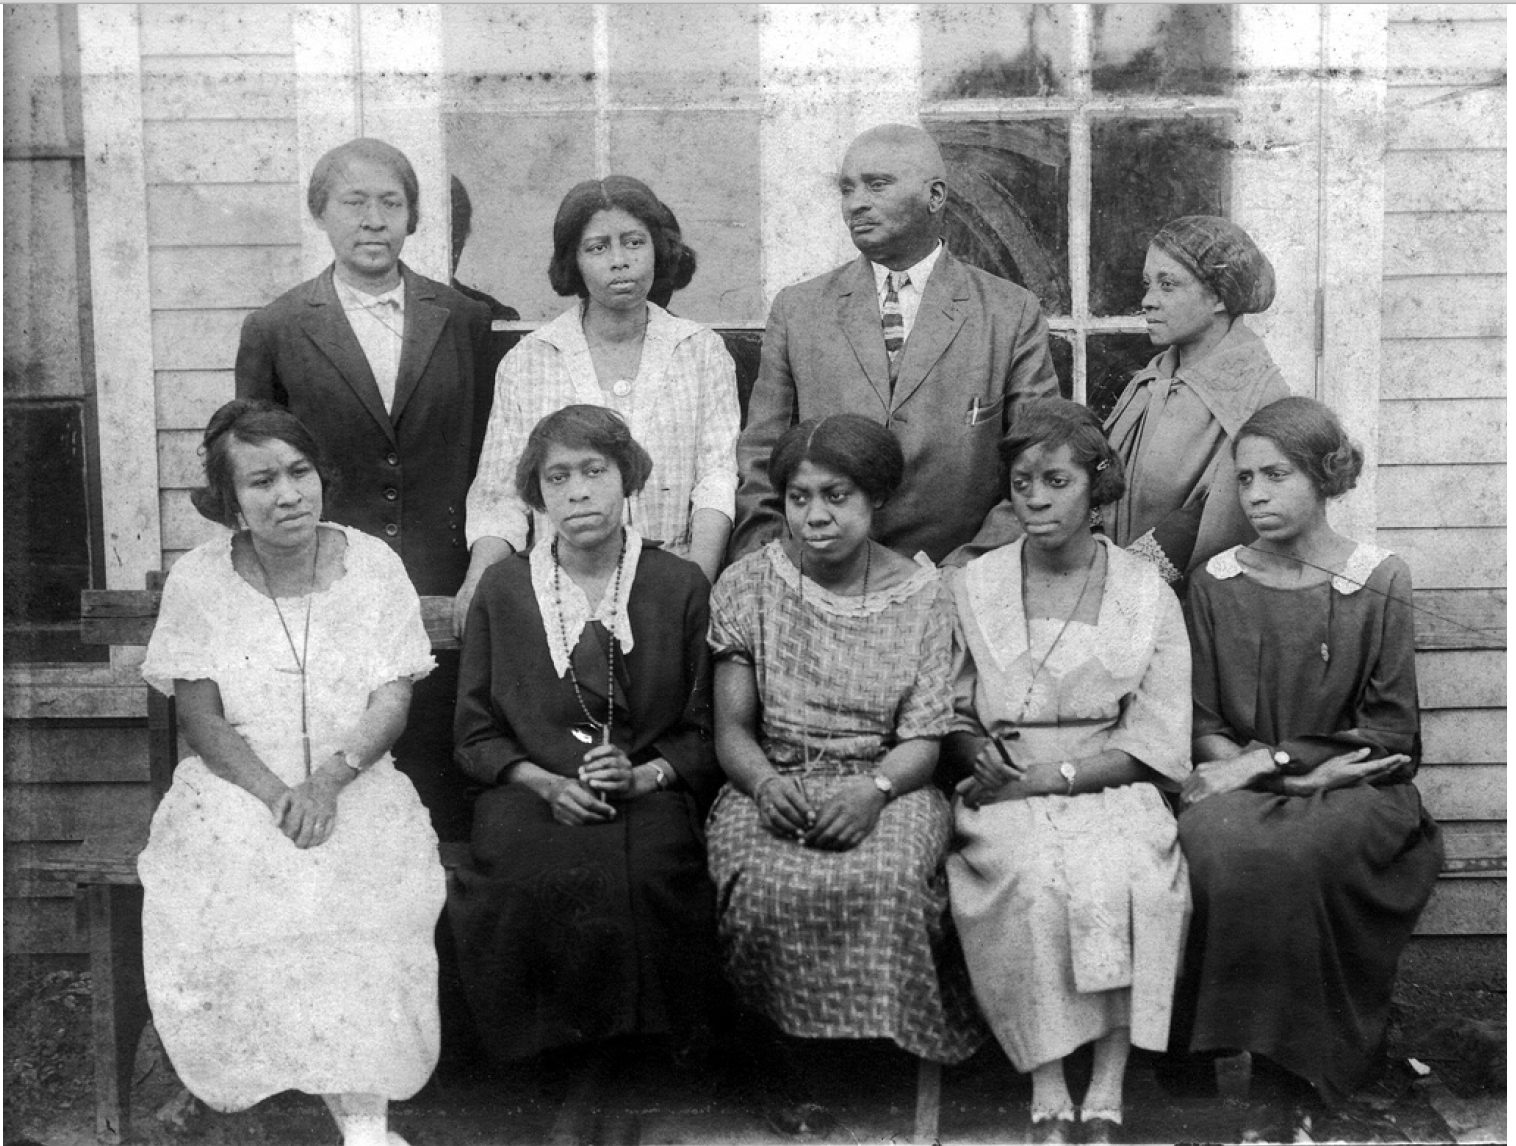 1921 Franklin Training School Principal and Teachers. Standing, Left to Right, Carrie Otey, Edna Hughes, J.K. Hughes (Principal), Julie Williams, sitting: Irene Williams, Mattie Stewart, Patty Carter, Patti Davis, Carrie L. Ridley.